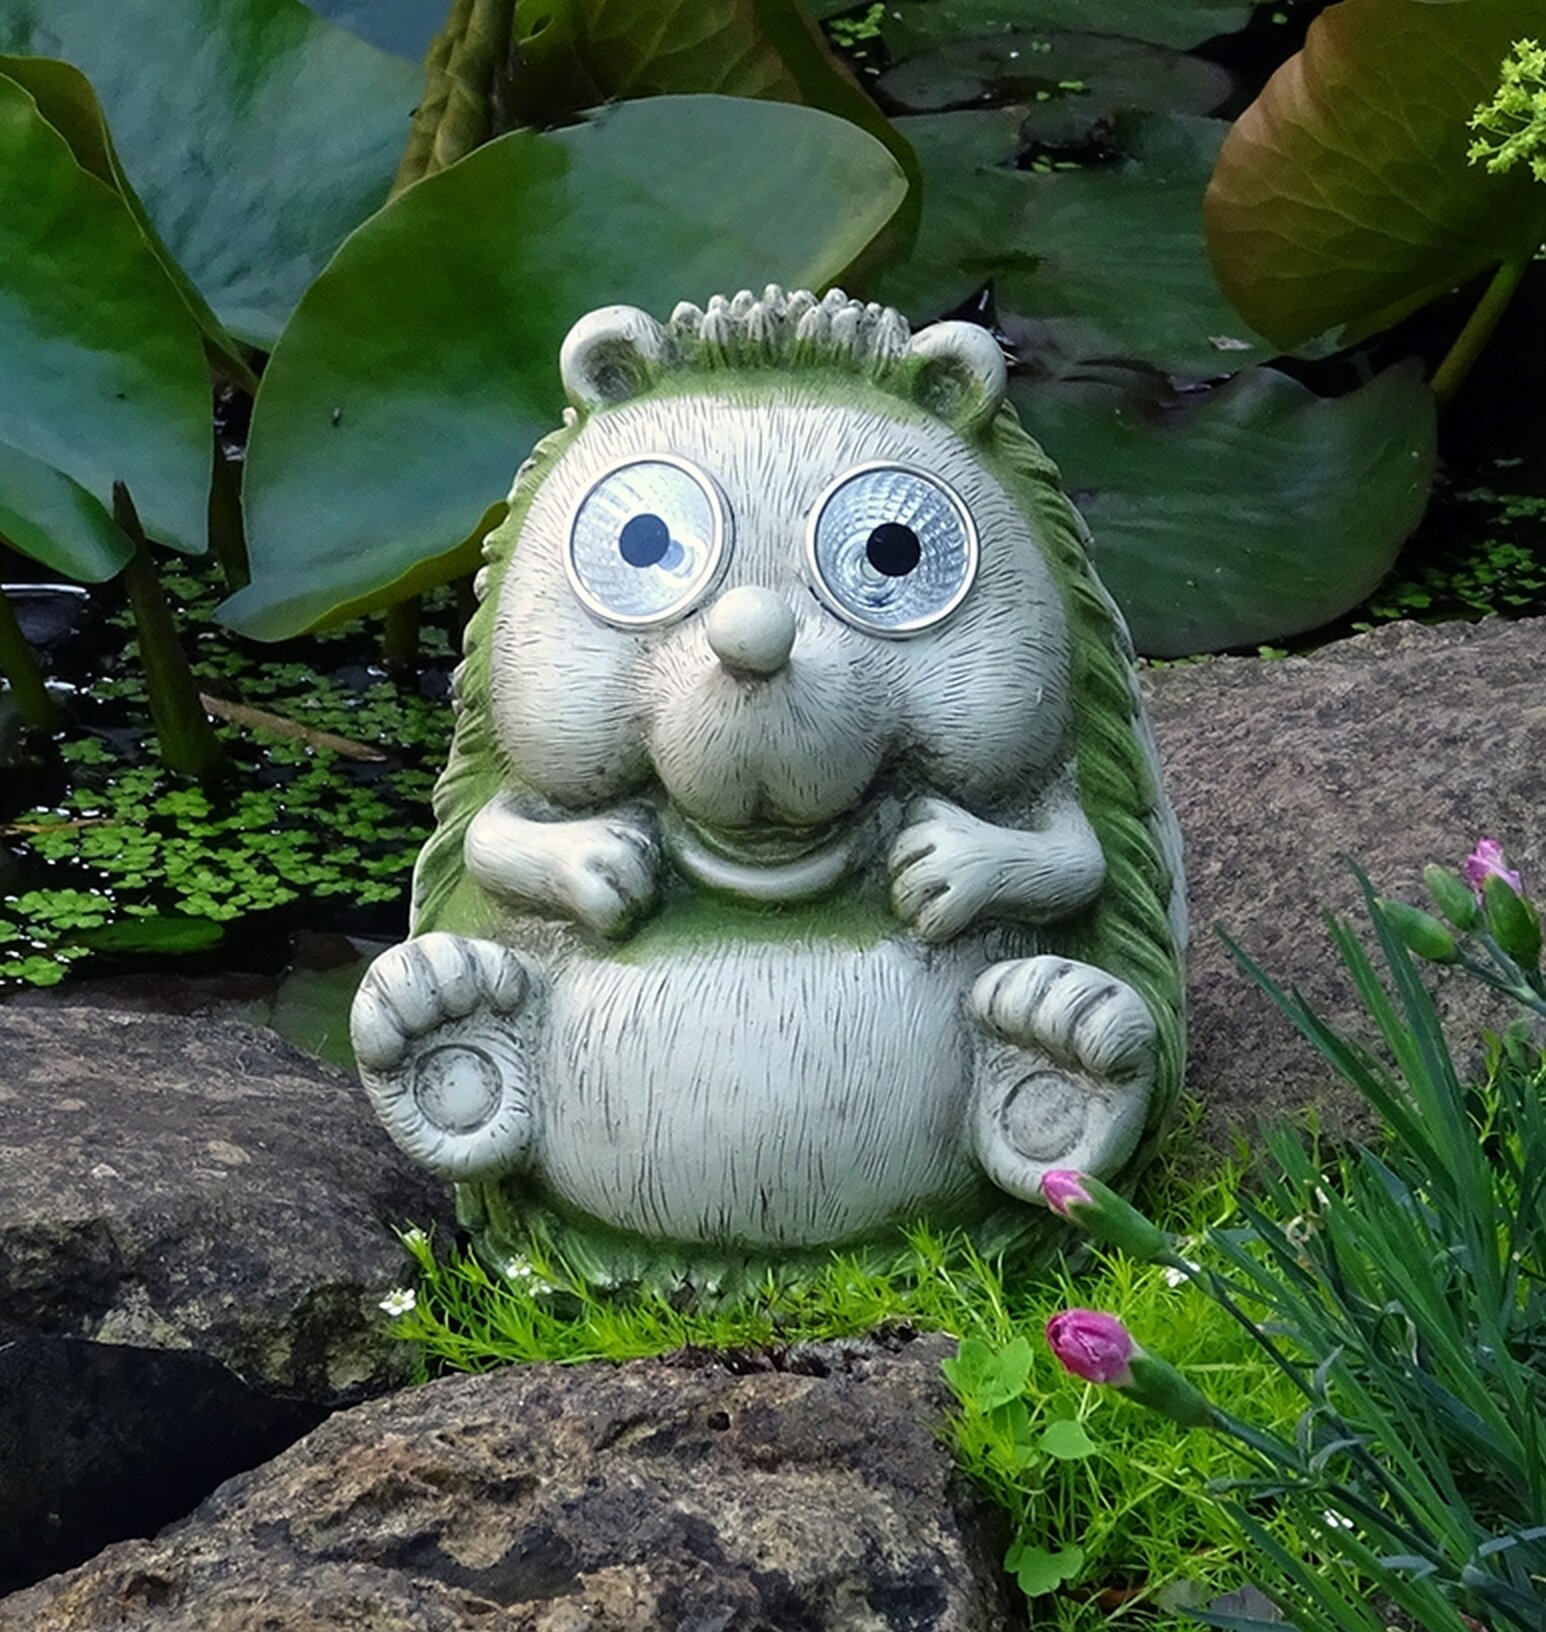 Bax Hedgehog Figurine with Solar Light